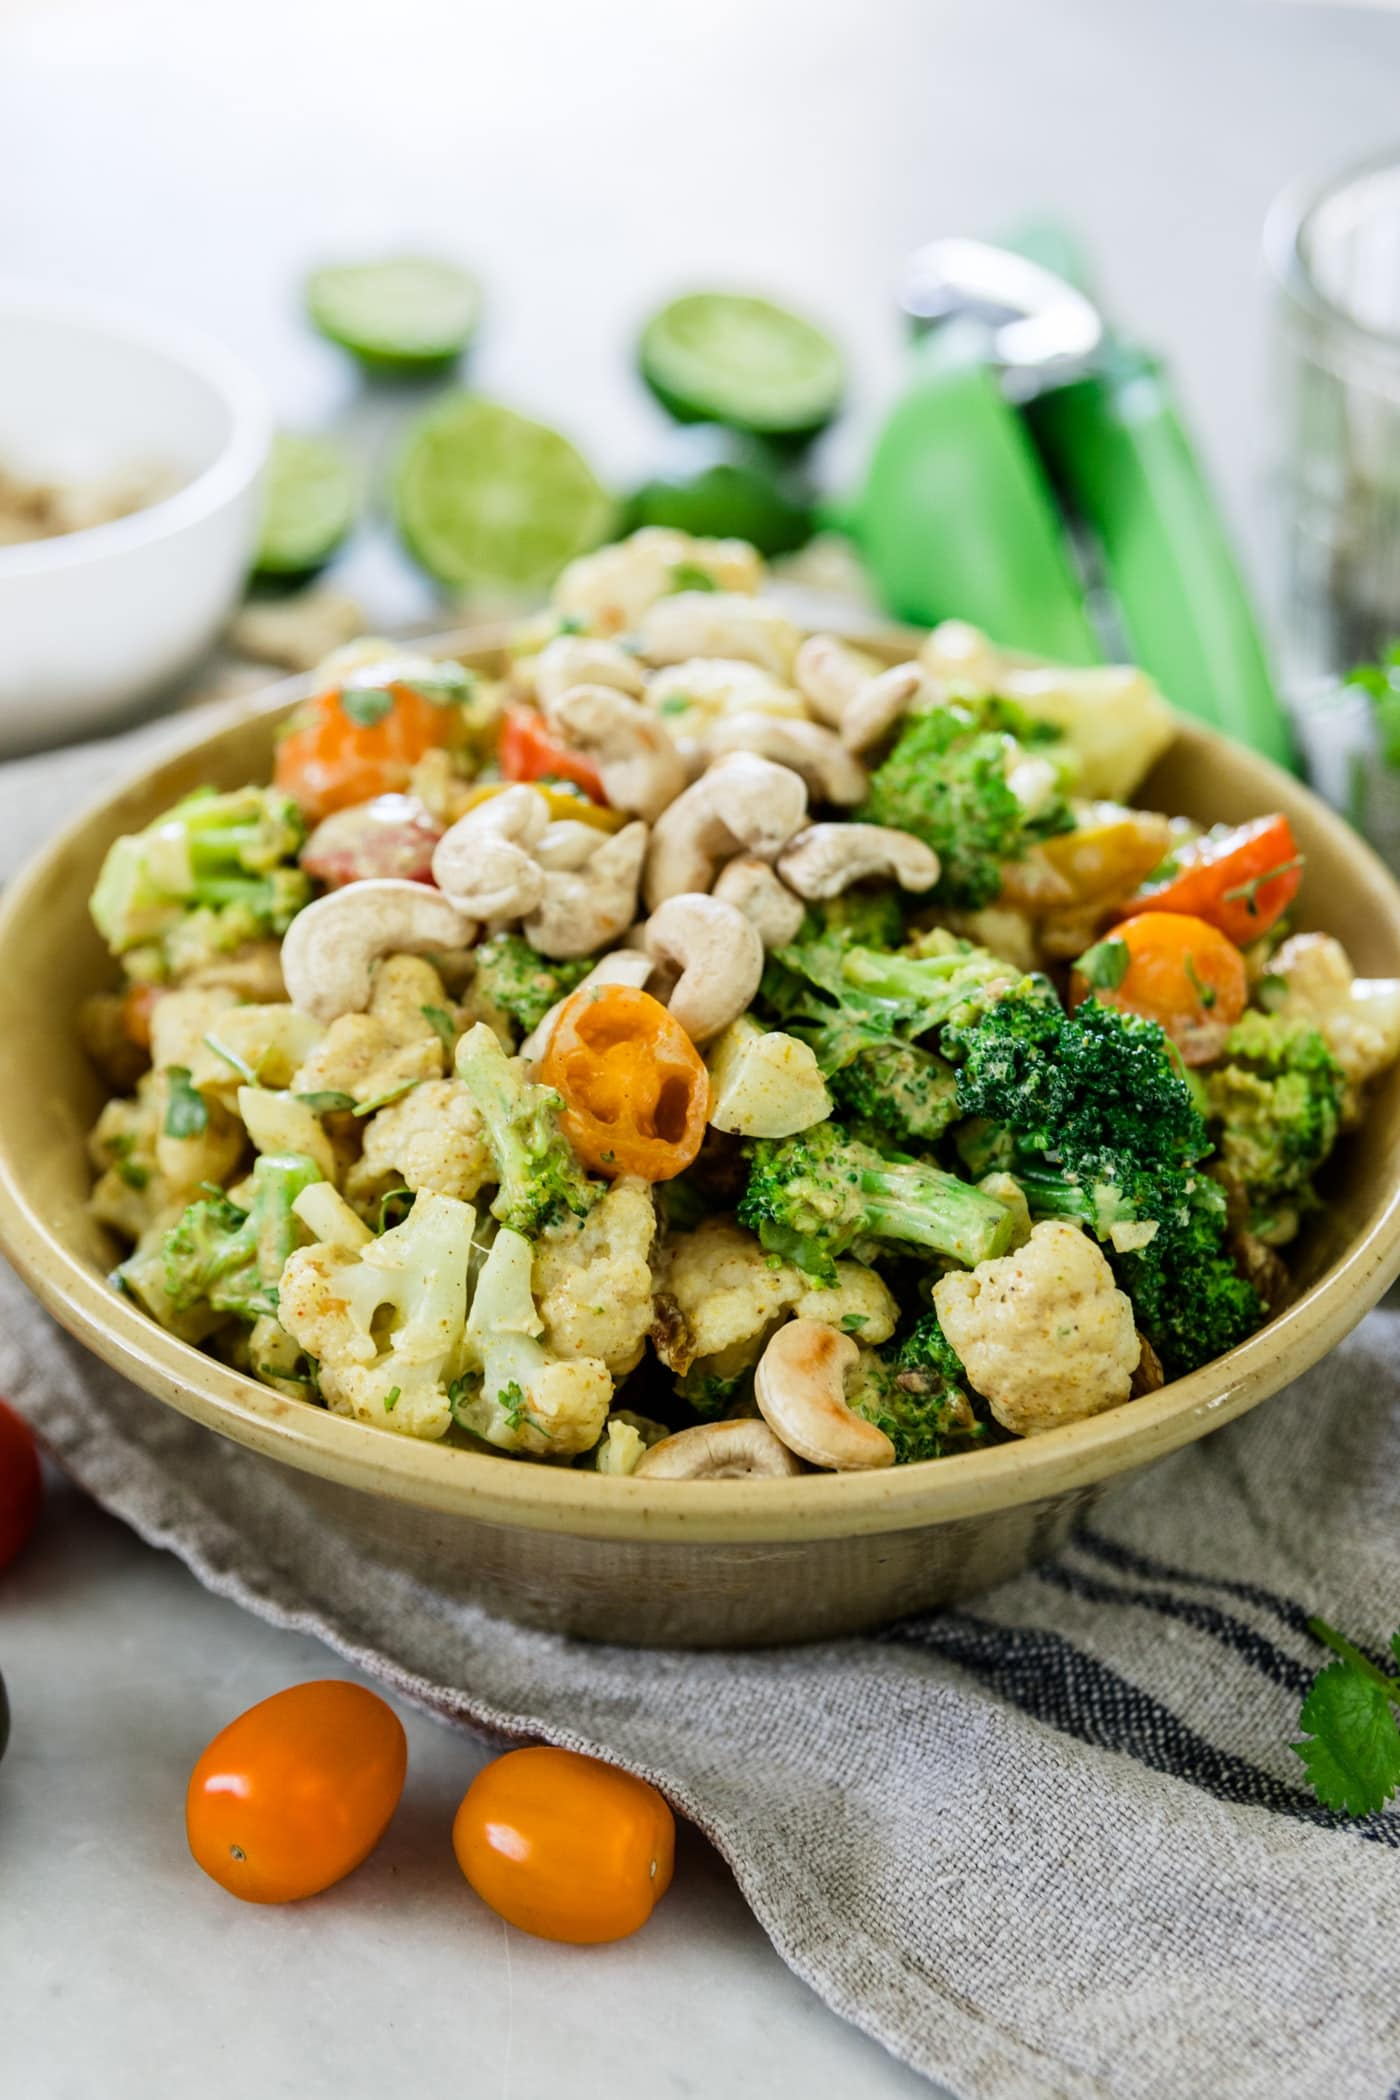 Pieces of broccoli, tomatoes and cauliflower salad in a large yellow bowl sprinkled with cashews with used limes, extra cashews in a bowl, a lime squeezer and napkin in background on a marble surface